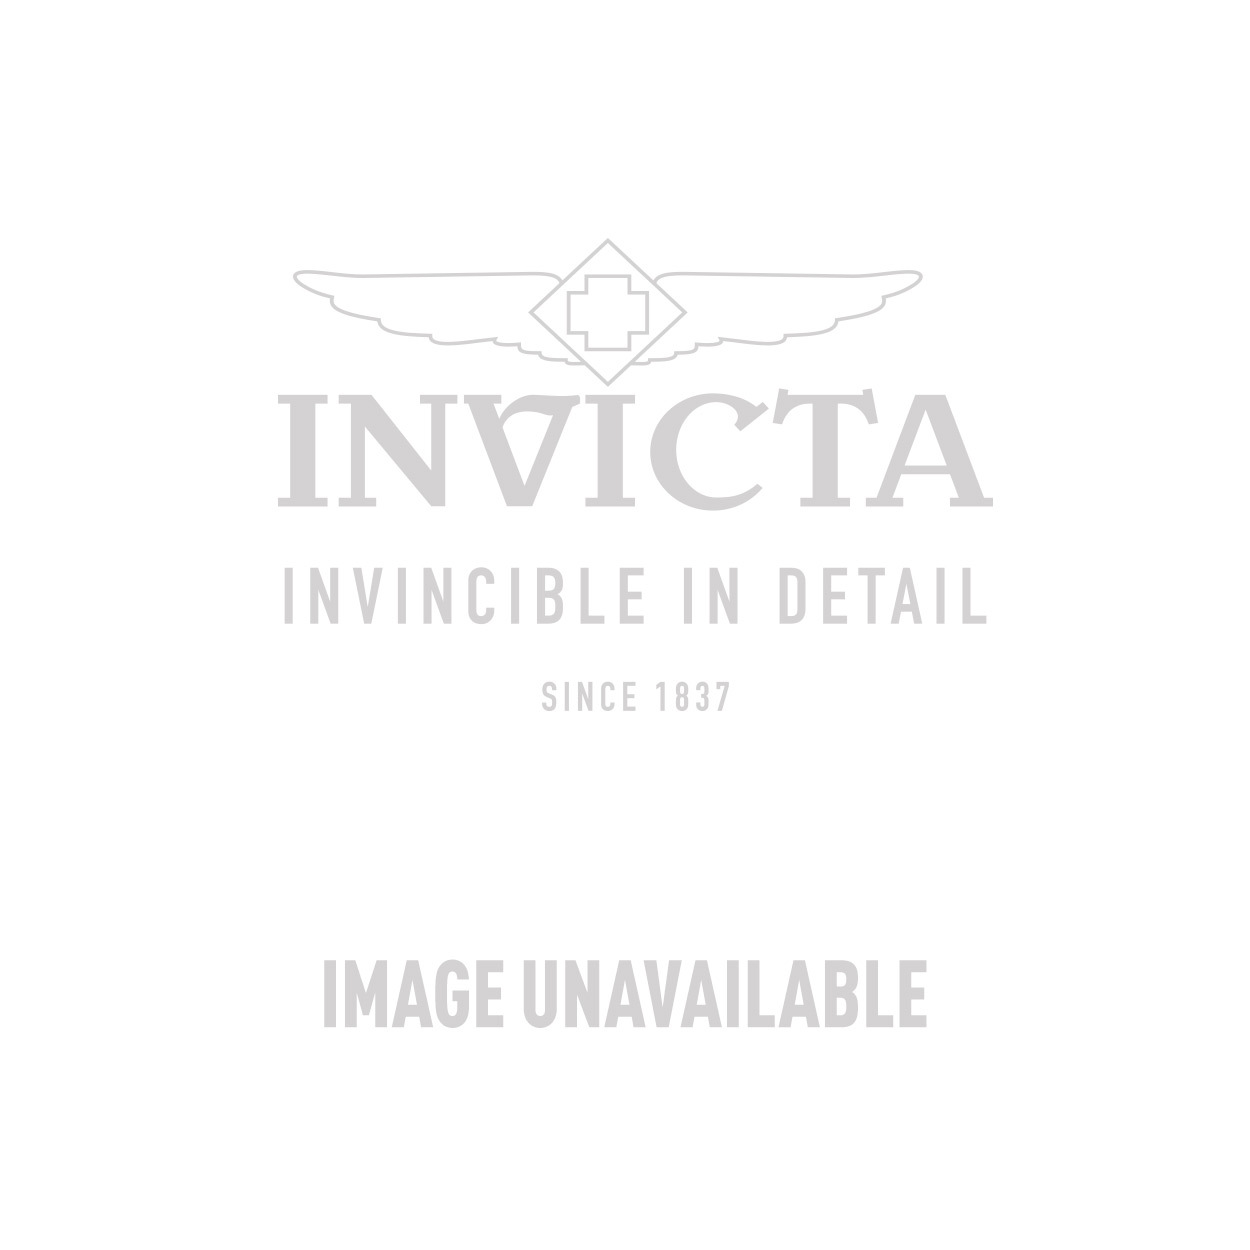 Invicta Vintage Mechanical Watch - Gunmetal case with Black tone Leather band - Model 12406